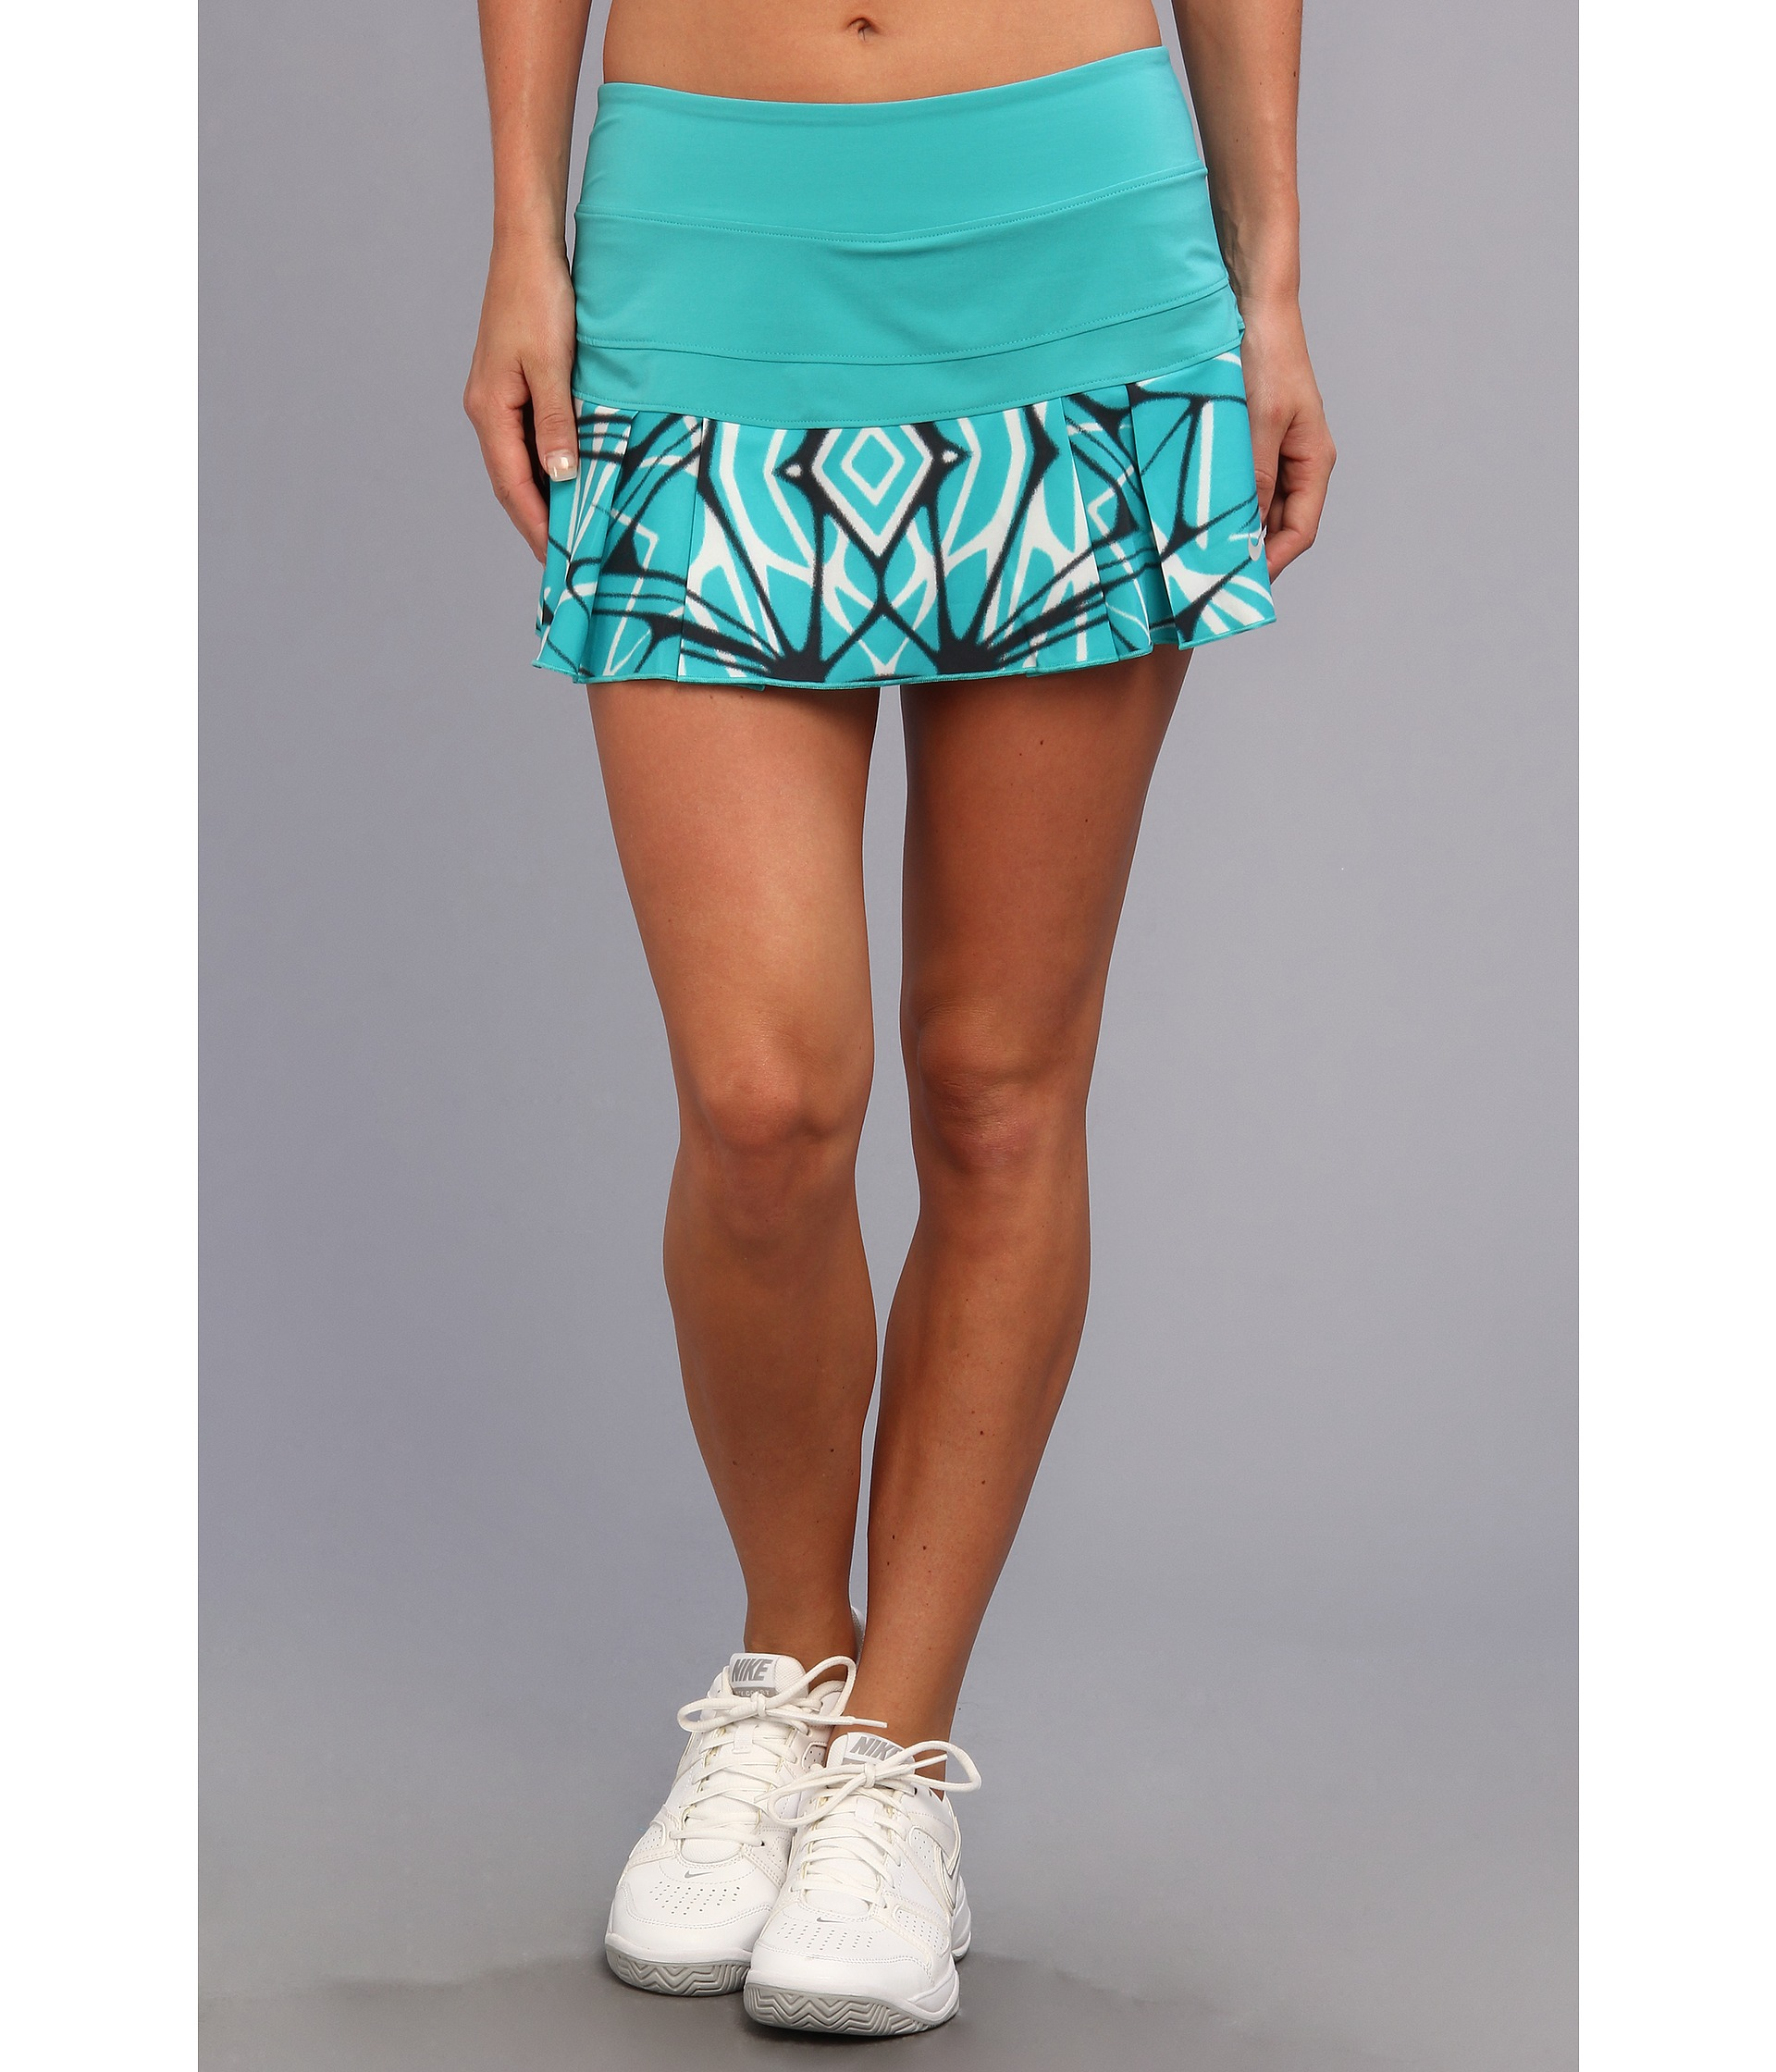 Nike Printed Pleated Woven Skirt Turbo Green/Matte Silver